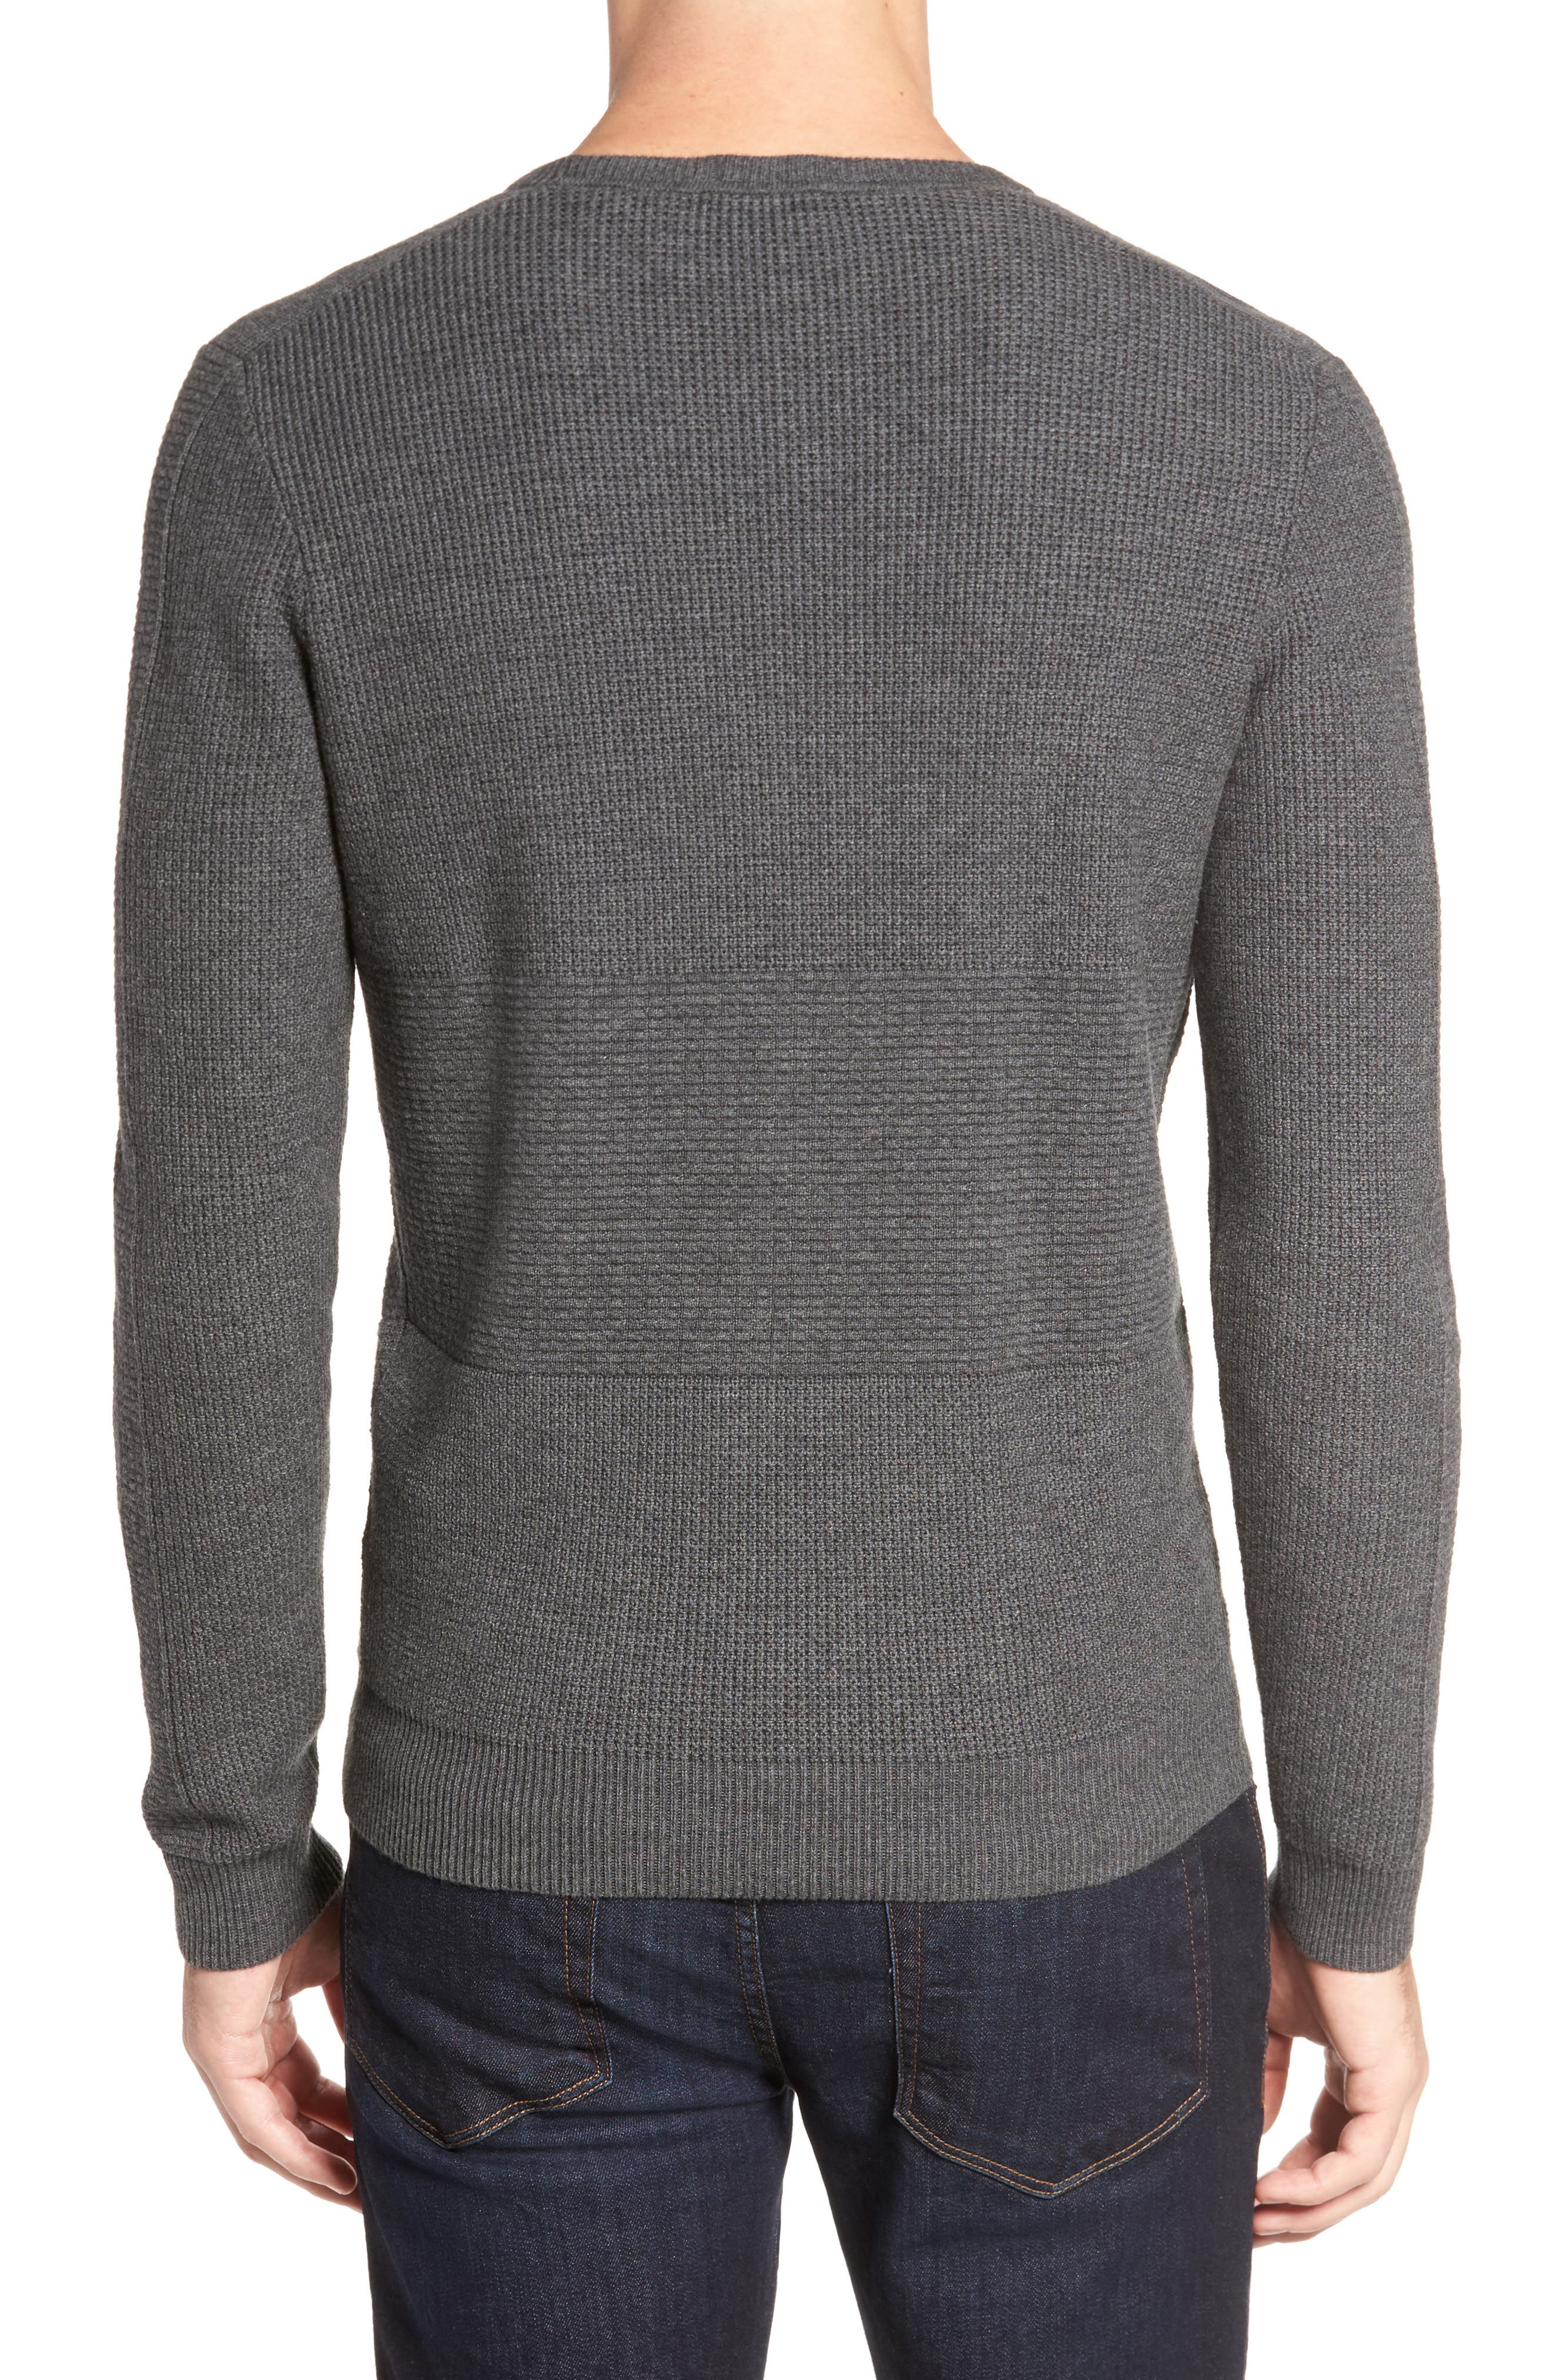 Naranjo Wool & Cotton Sweater,                             Alternate thumbnail 2, color,                             Grey